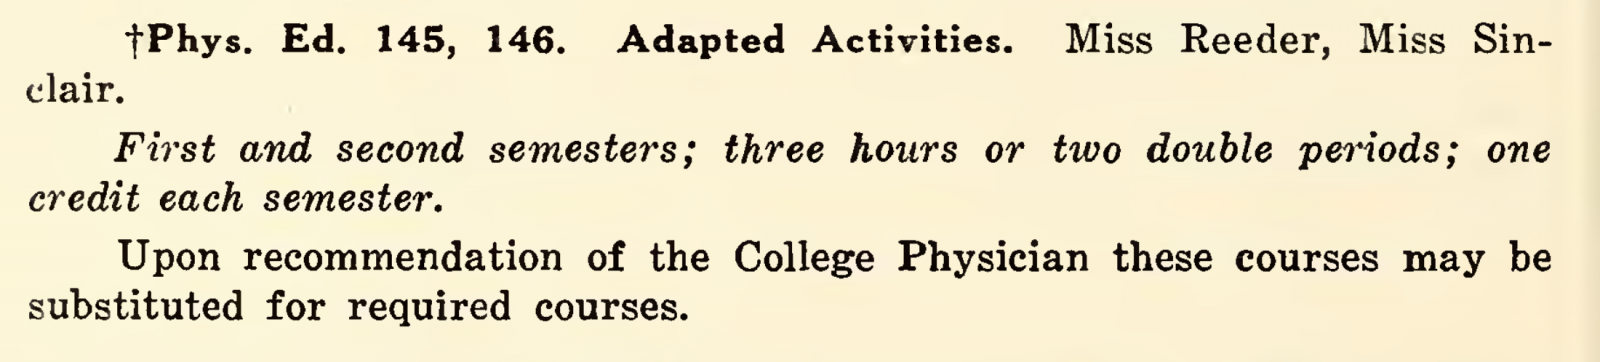 "Digitized excerpt of the 1945-1946 William & Mary course catalog, featuring the entry for ""Phys. Ed. 145, 146,"" called ""Adapted Activities."""